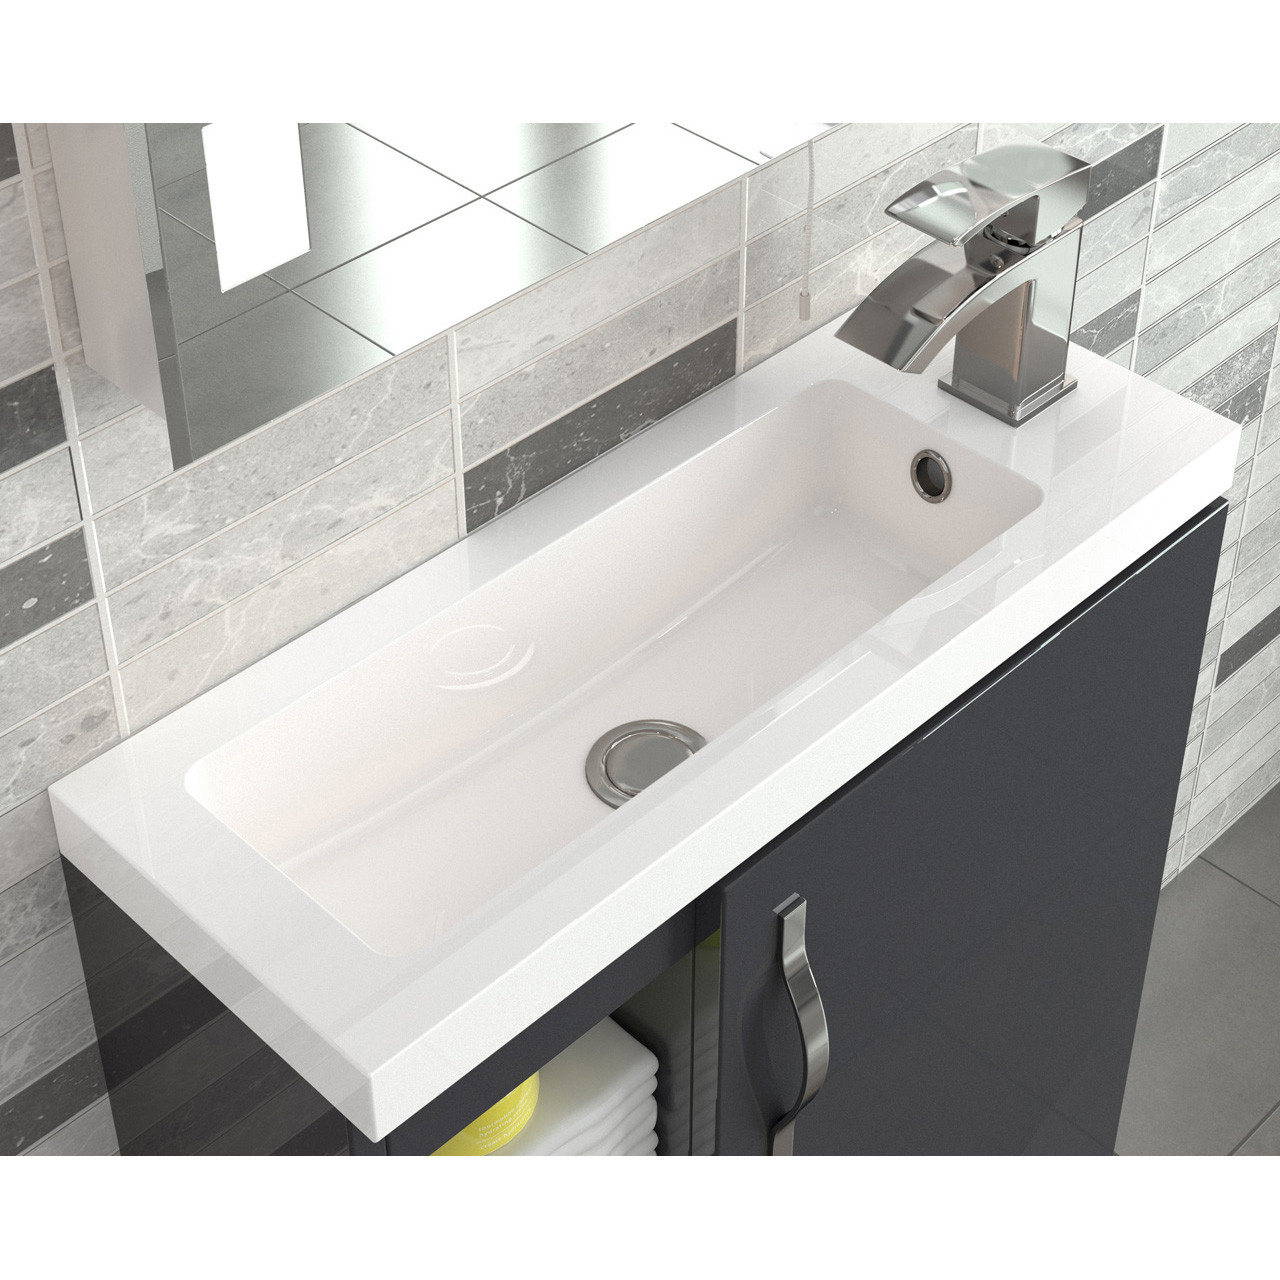 Hudson Reed Apollo Compact Grey Gloss Wall Hung 600mm Cabinet & Basin - FMA436C & PMB303